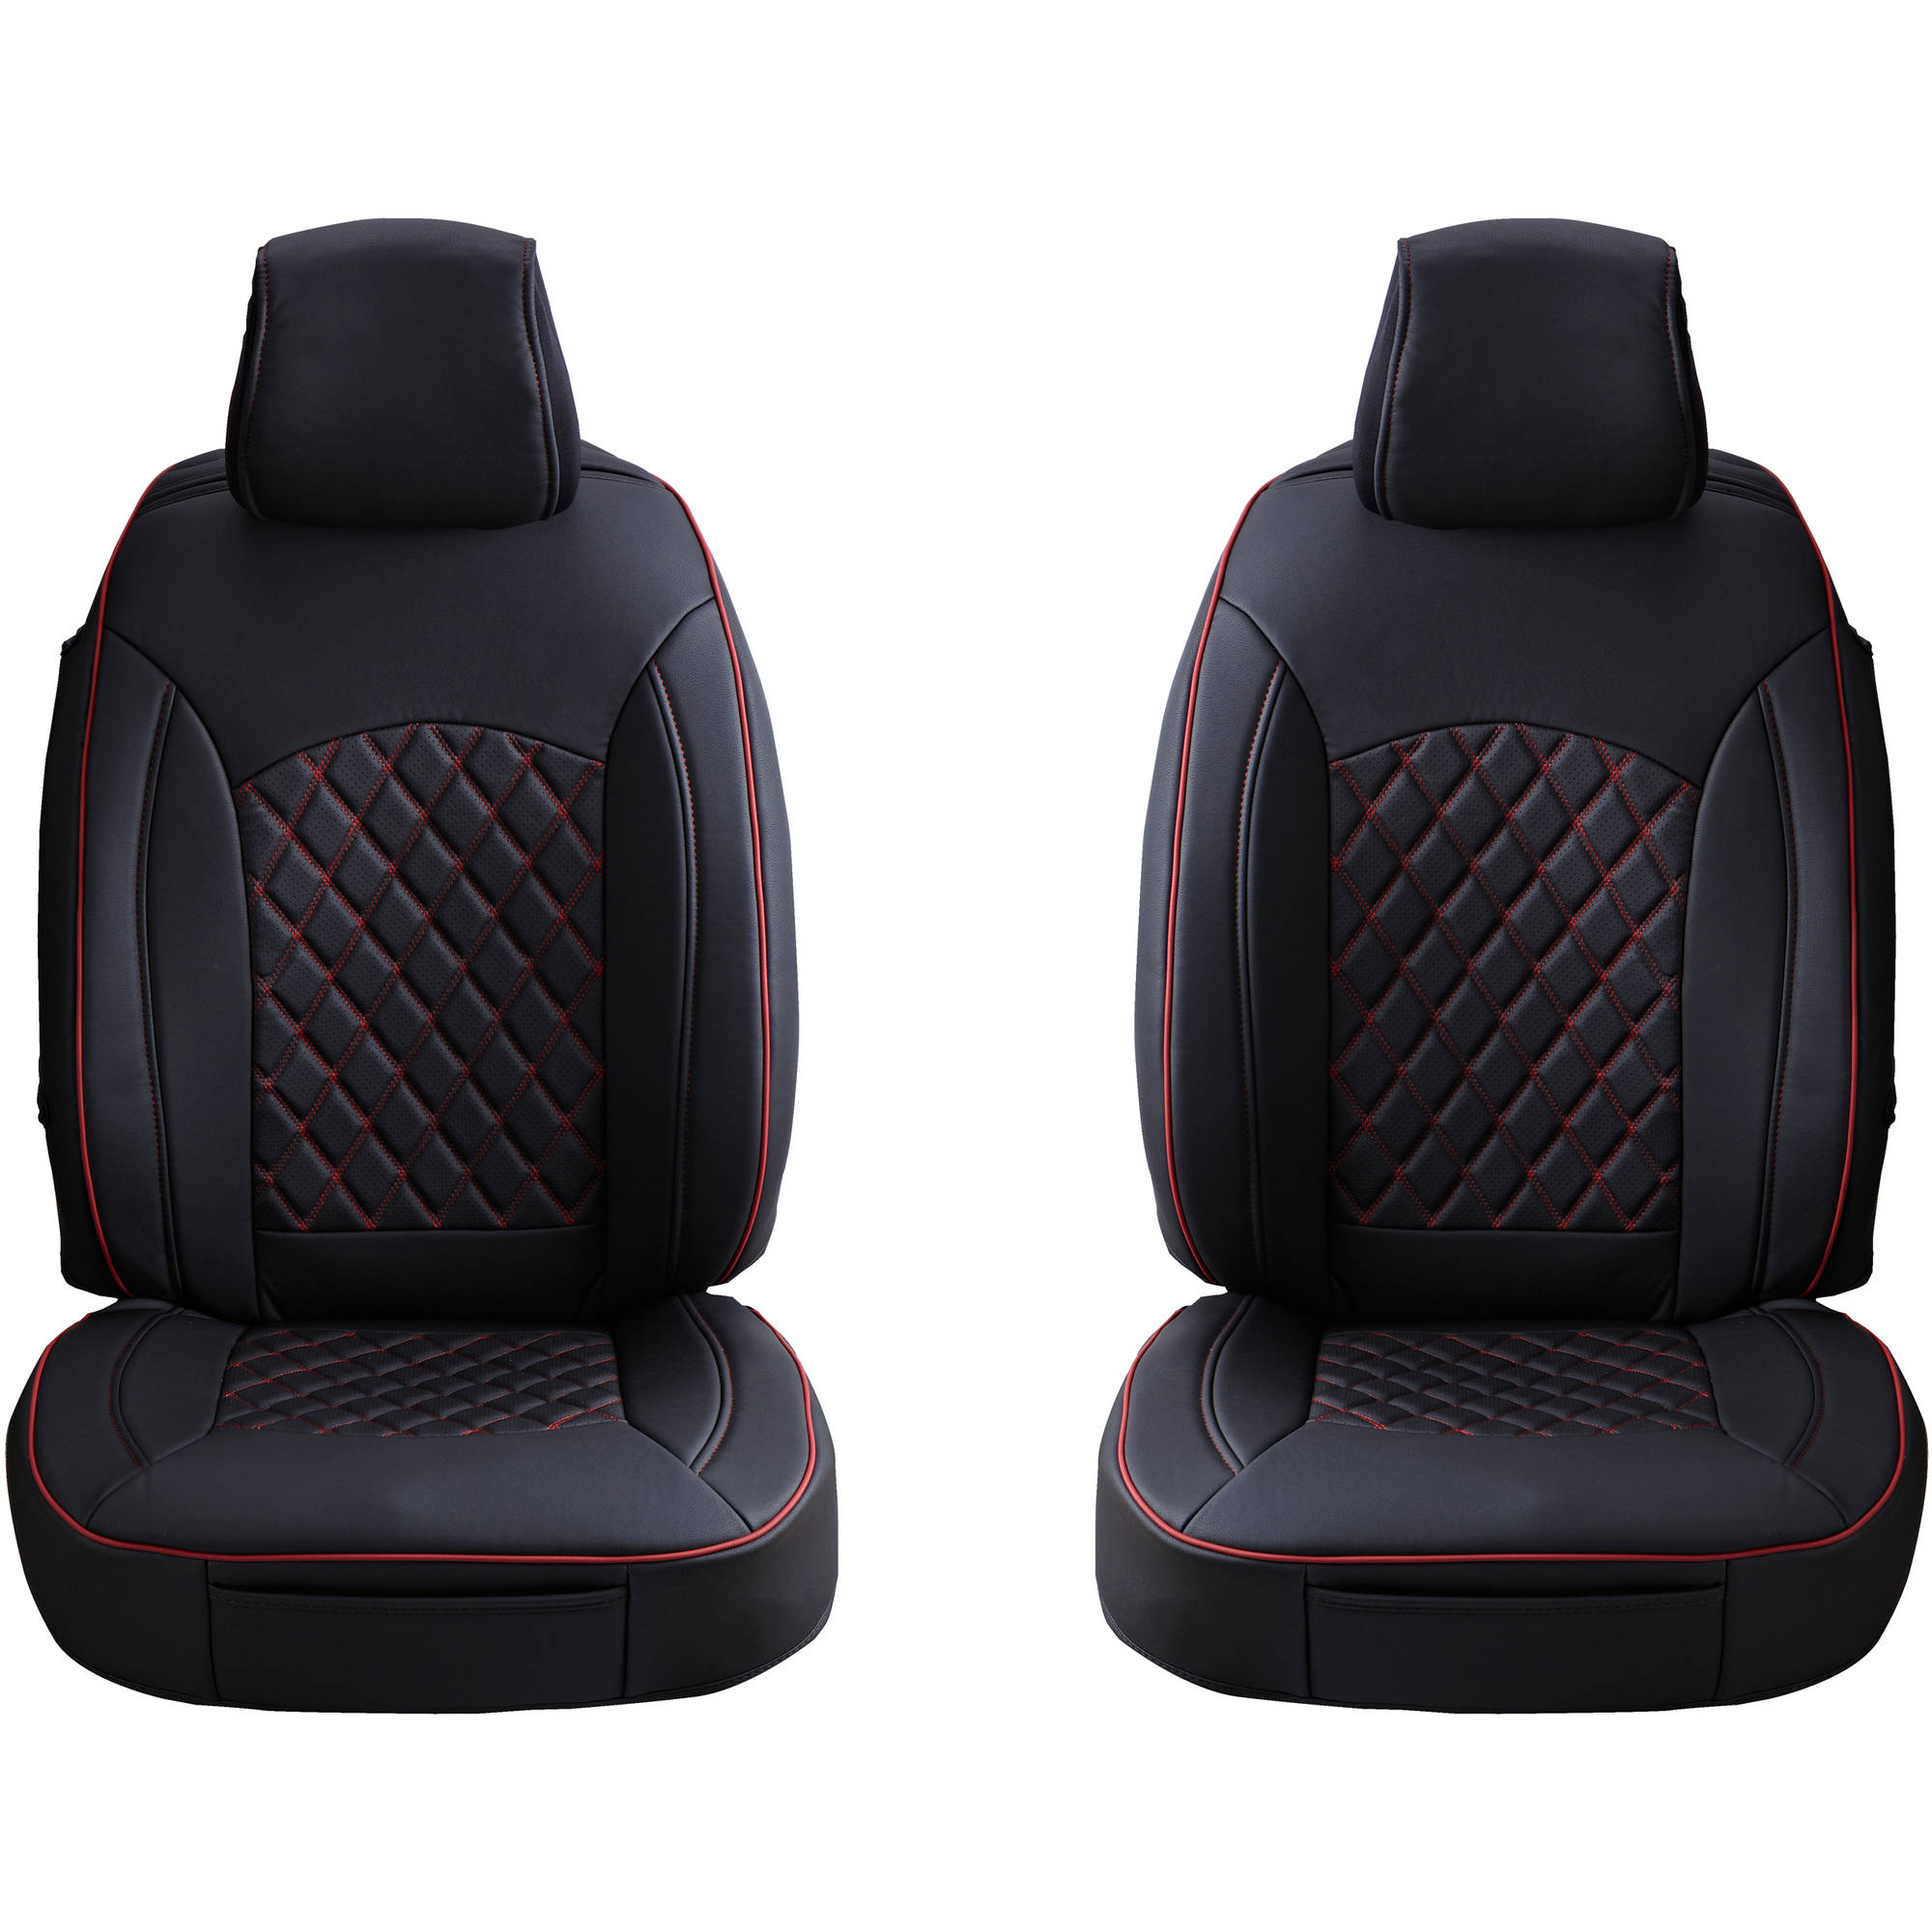 Aegis Luxurious 3D Design PU Leather Seatcover, Front Set